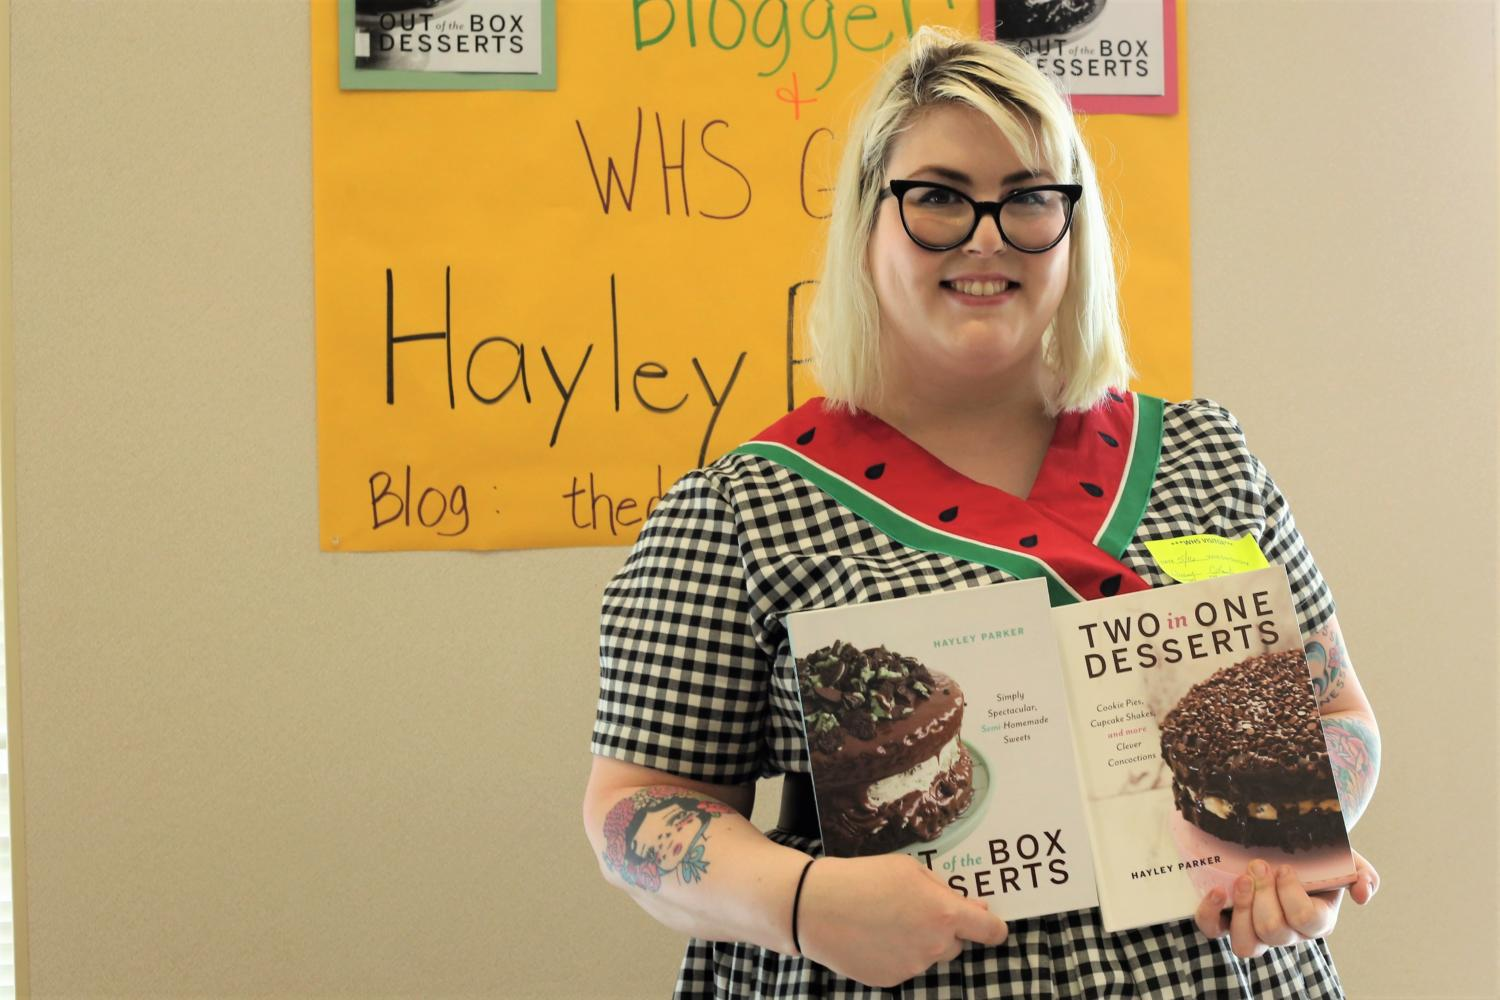 Library staff hosts alumna Hayley Parker for cookbook signing, meet-and-greet